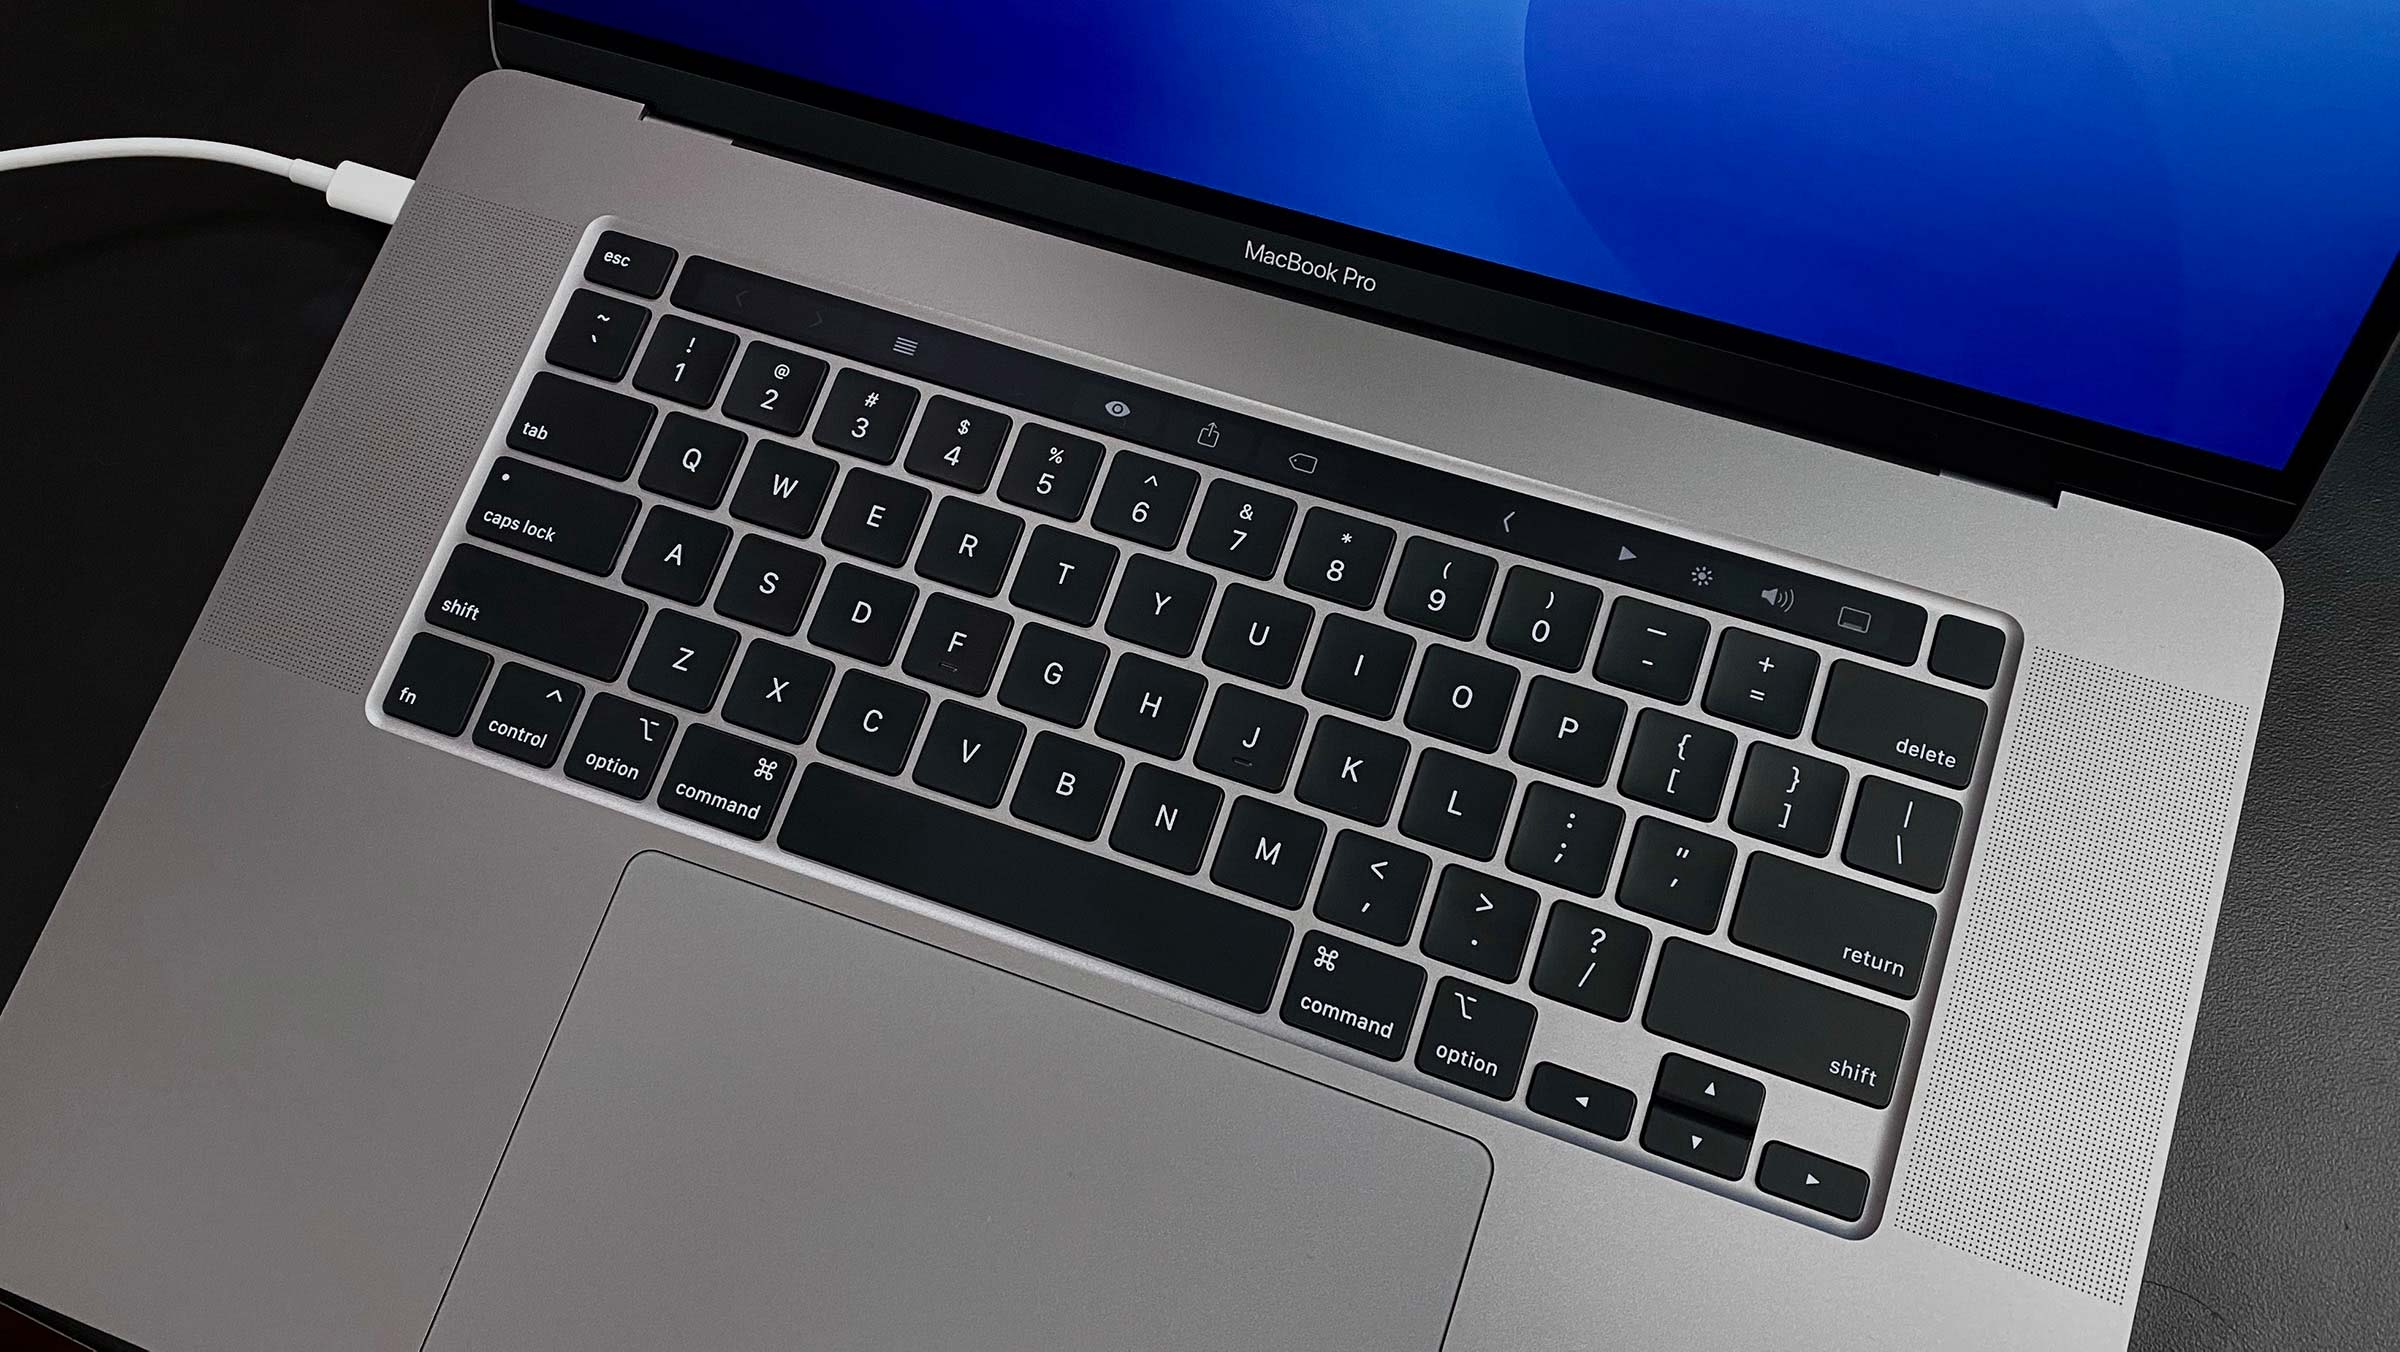 MacBook Pro 16 inch detail 001